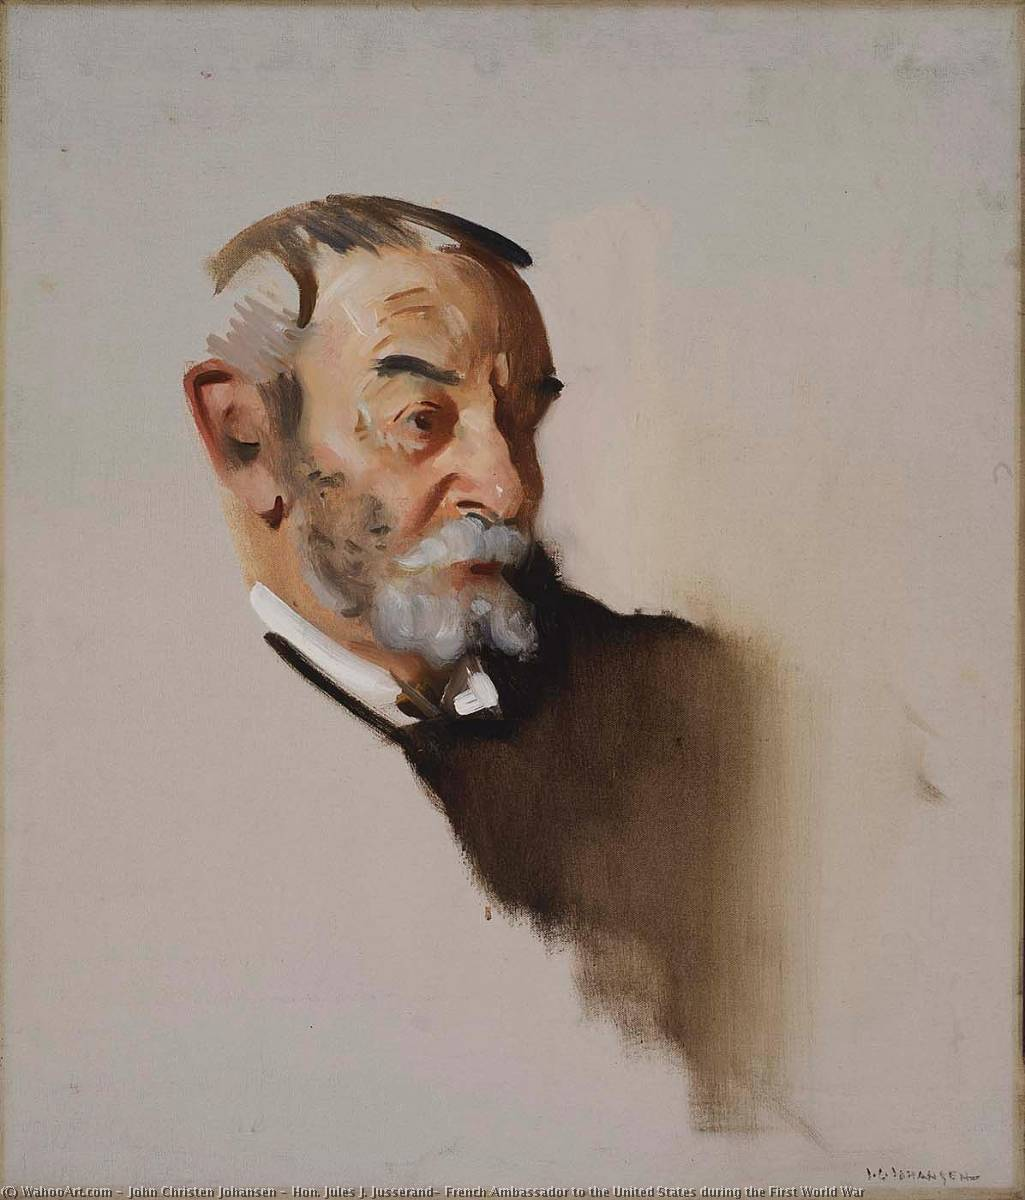 Hon. Jules J. Jusserand, French Ambassador to the United States during the First World War, Oil On Canvas by John Christen Johansen